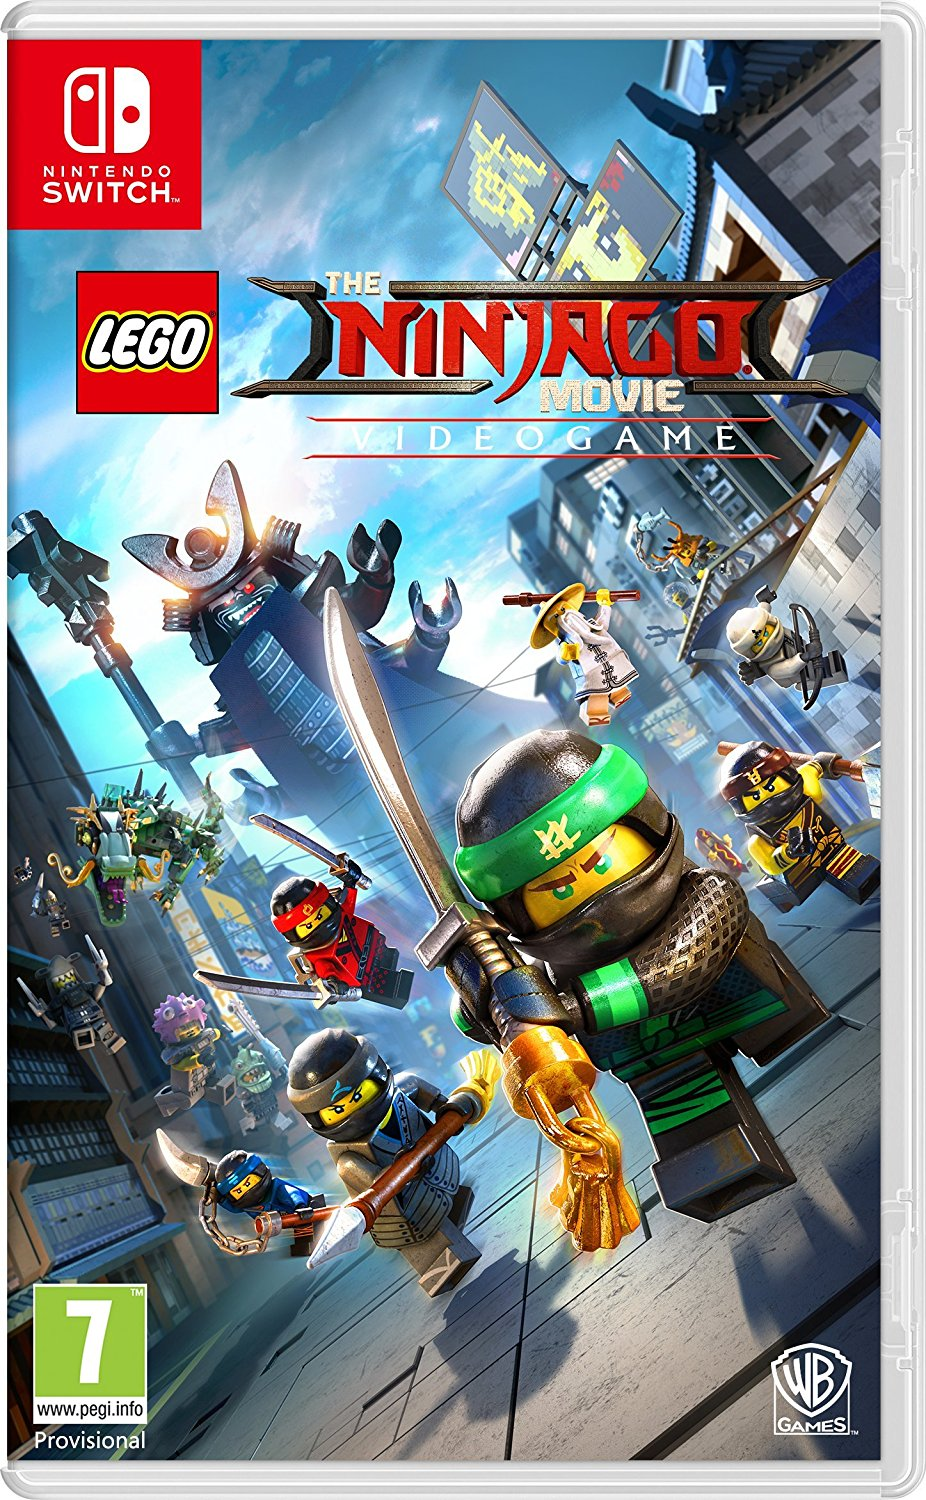 The LEGO Ninjago Movie Video Game - Nintendo Switch